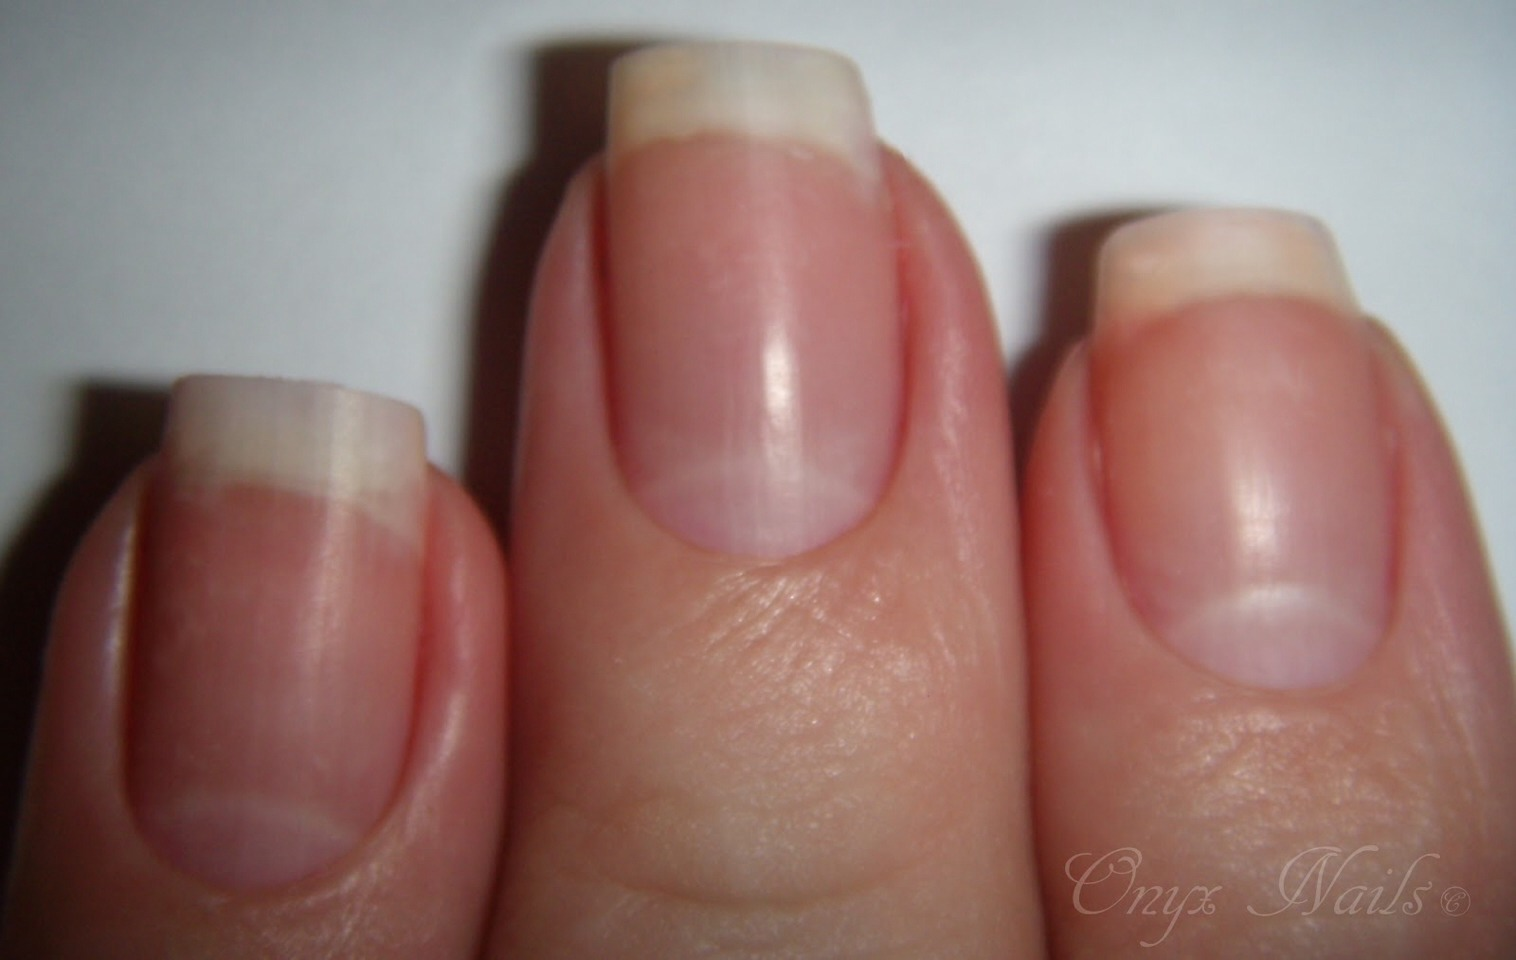 Good for nails. Helps them grow faster and thicker.